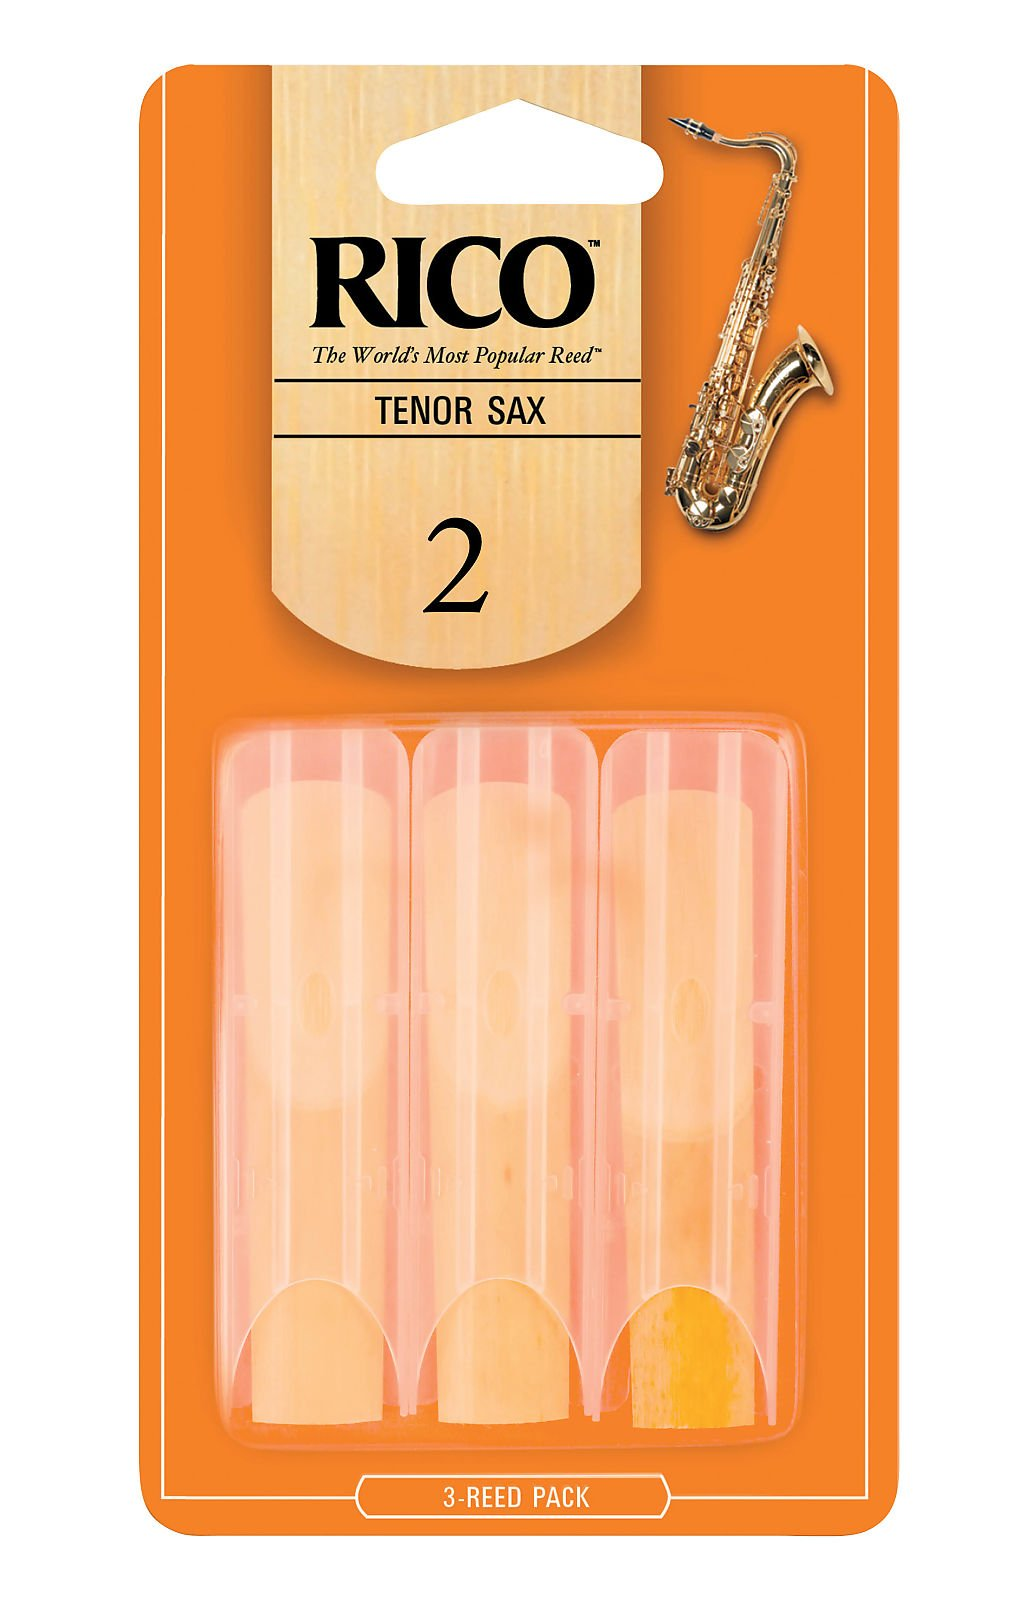 RICO TENOR SAX REED SIZE #2 (3 PACK)